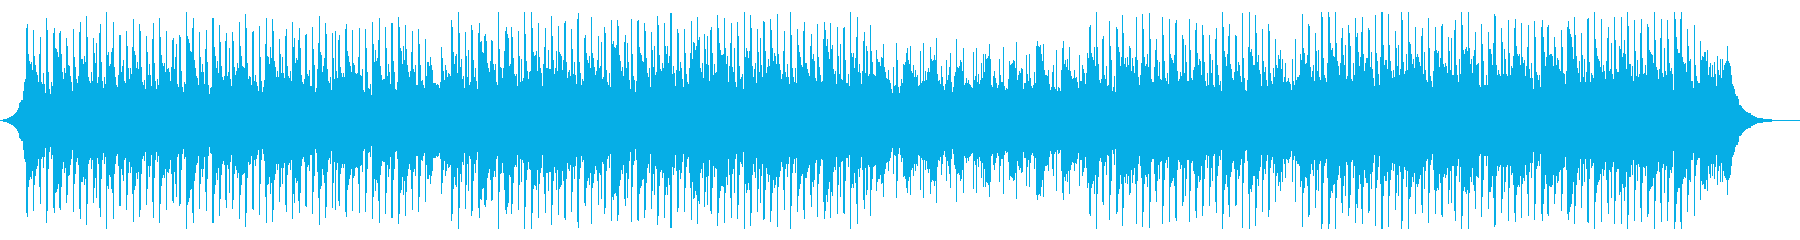 Medical Technology's reproduced waveform